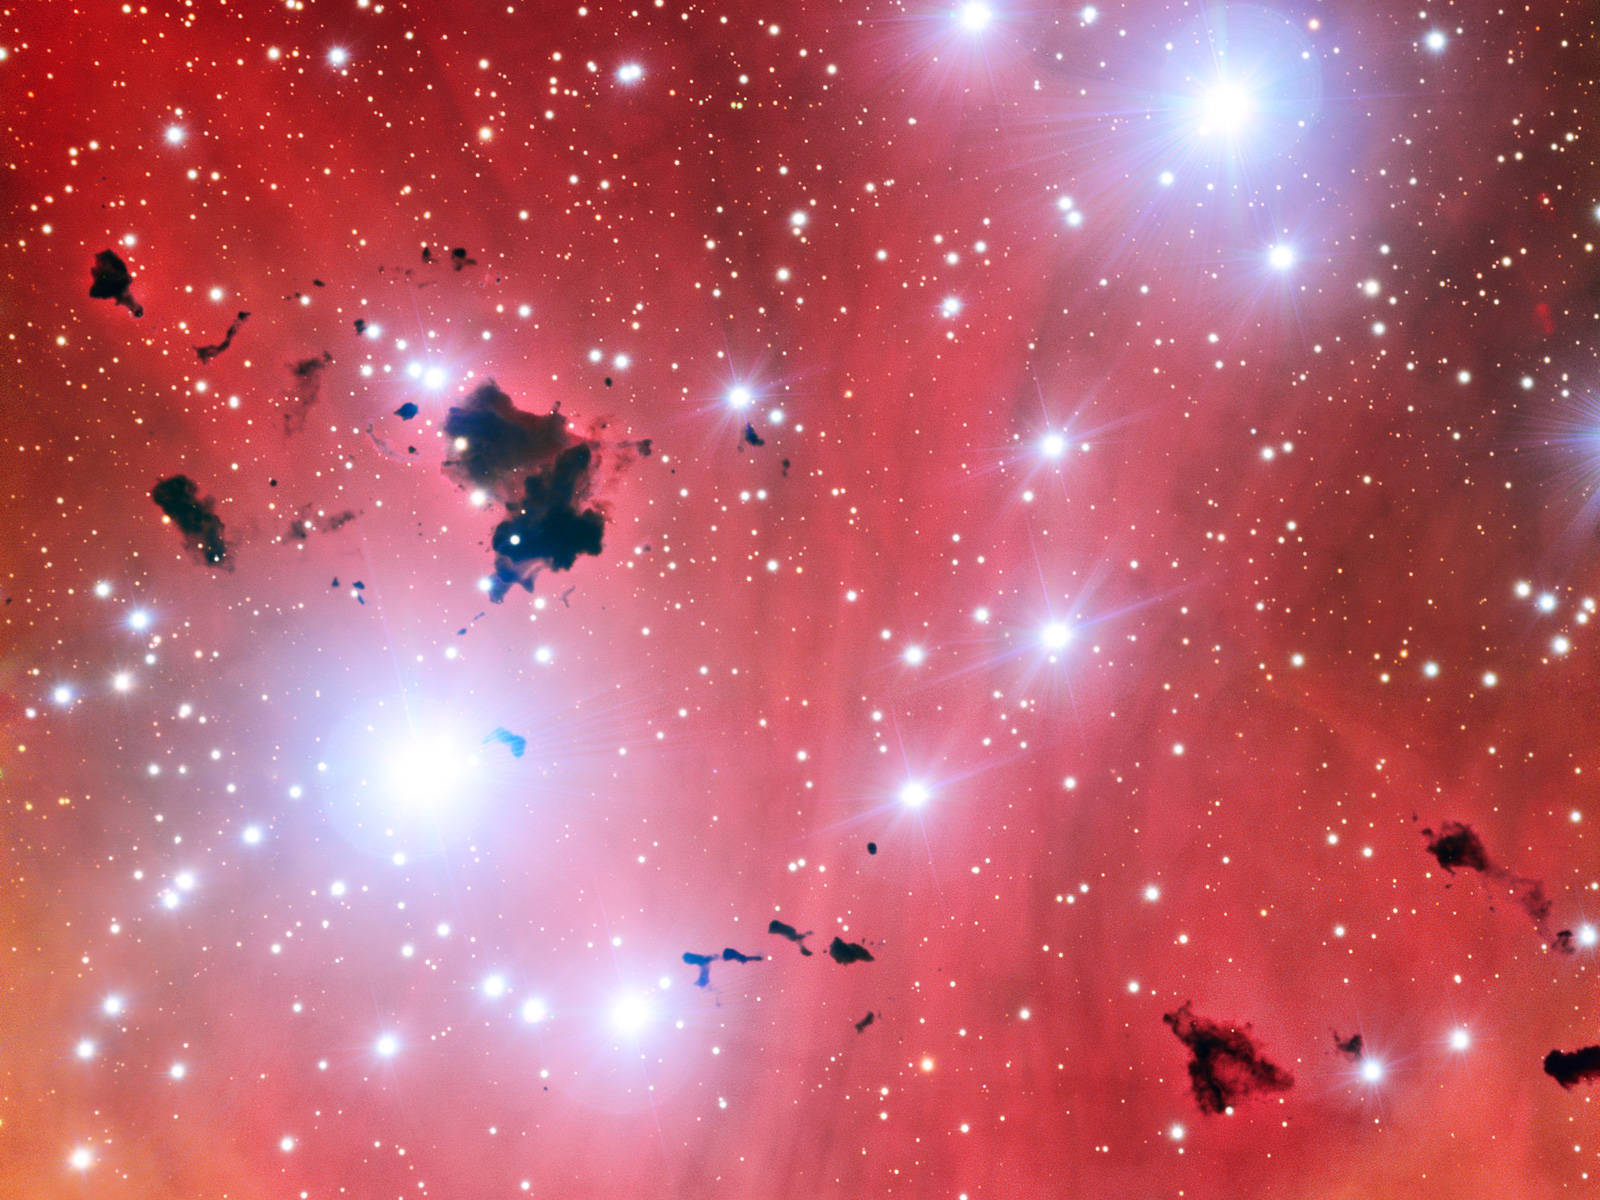 Stellar Nursery IC 2944 space wallpaper